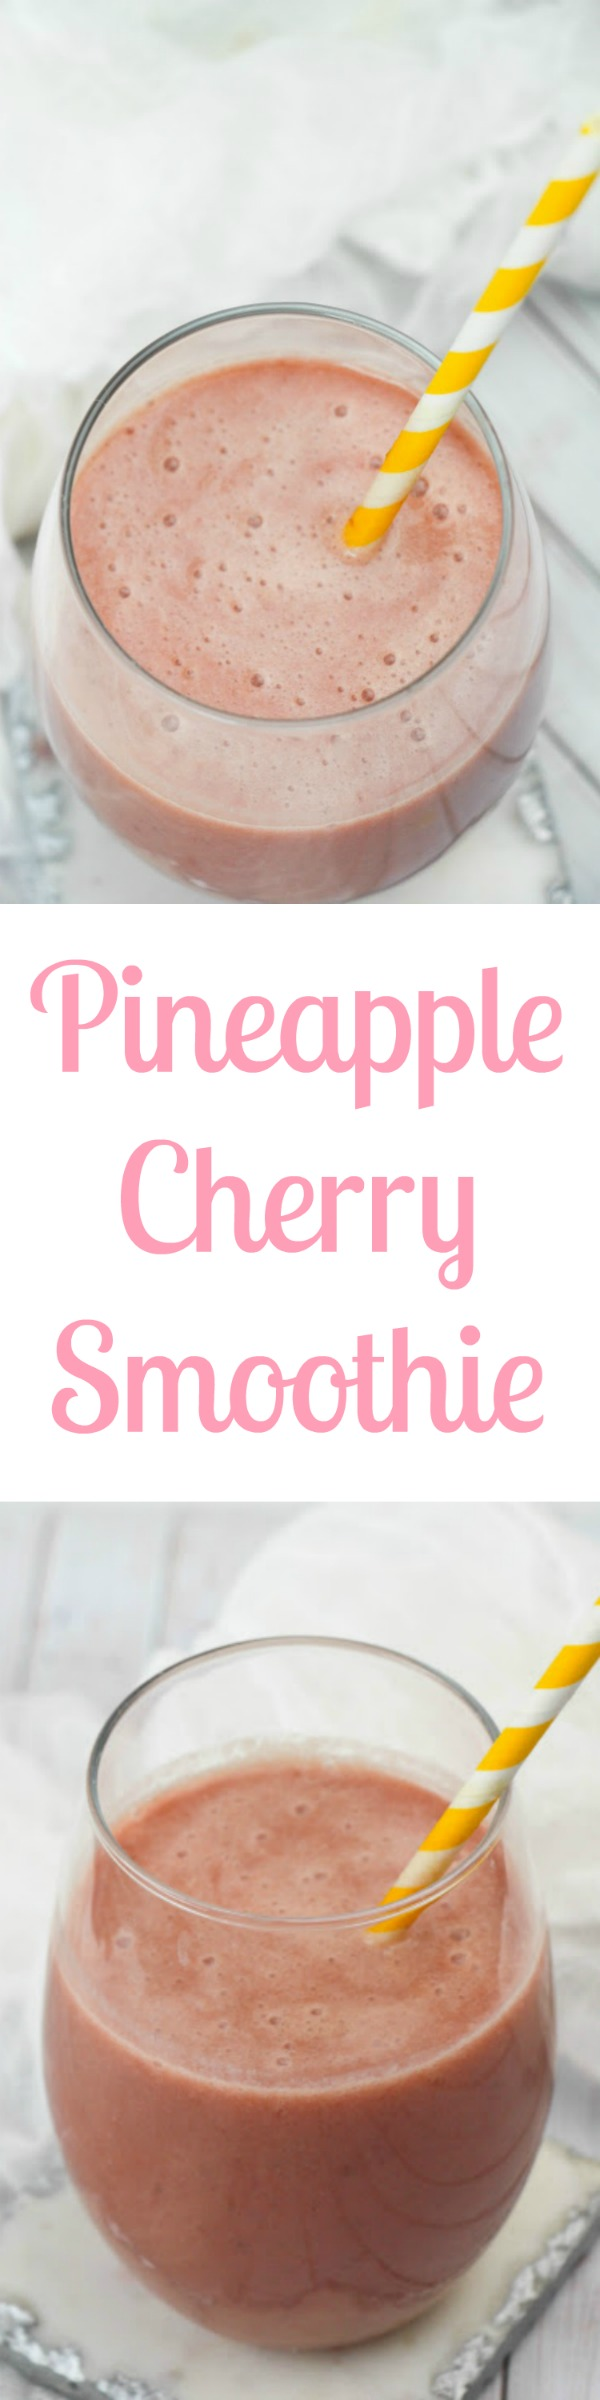 Pineapple Cherry Smoothies taste great and are a healthy snack too! #Easy #Recipes #MealPlan